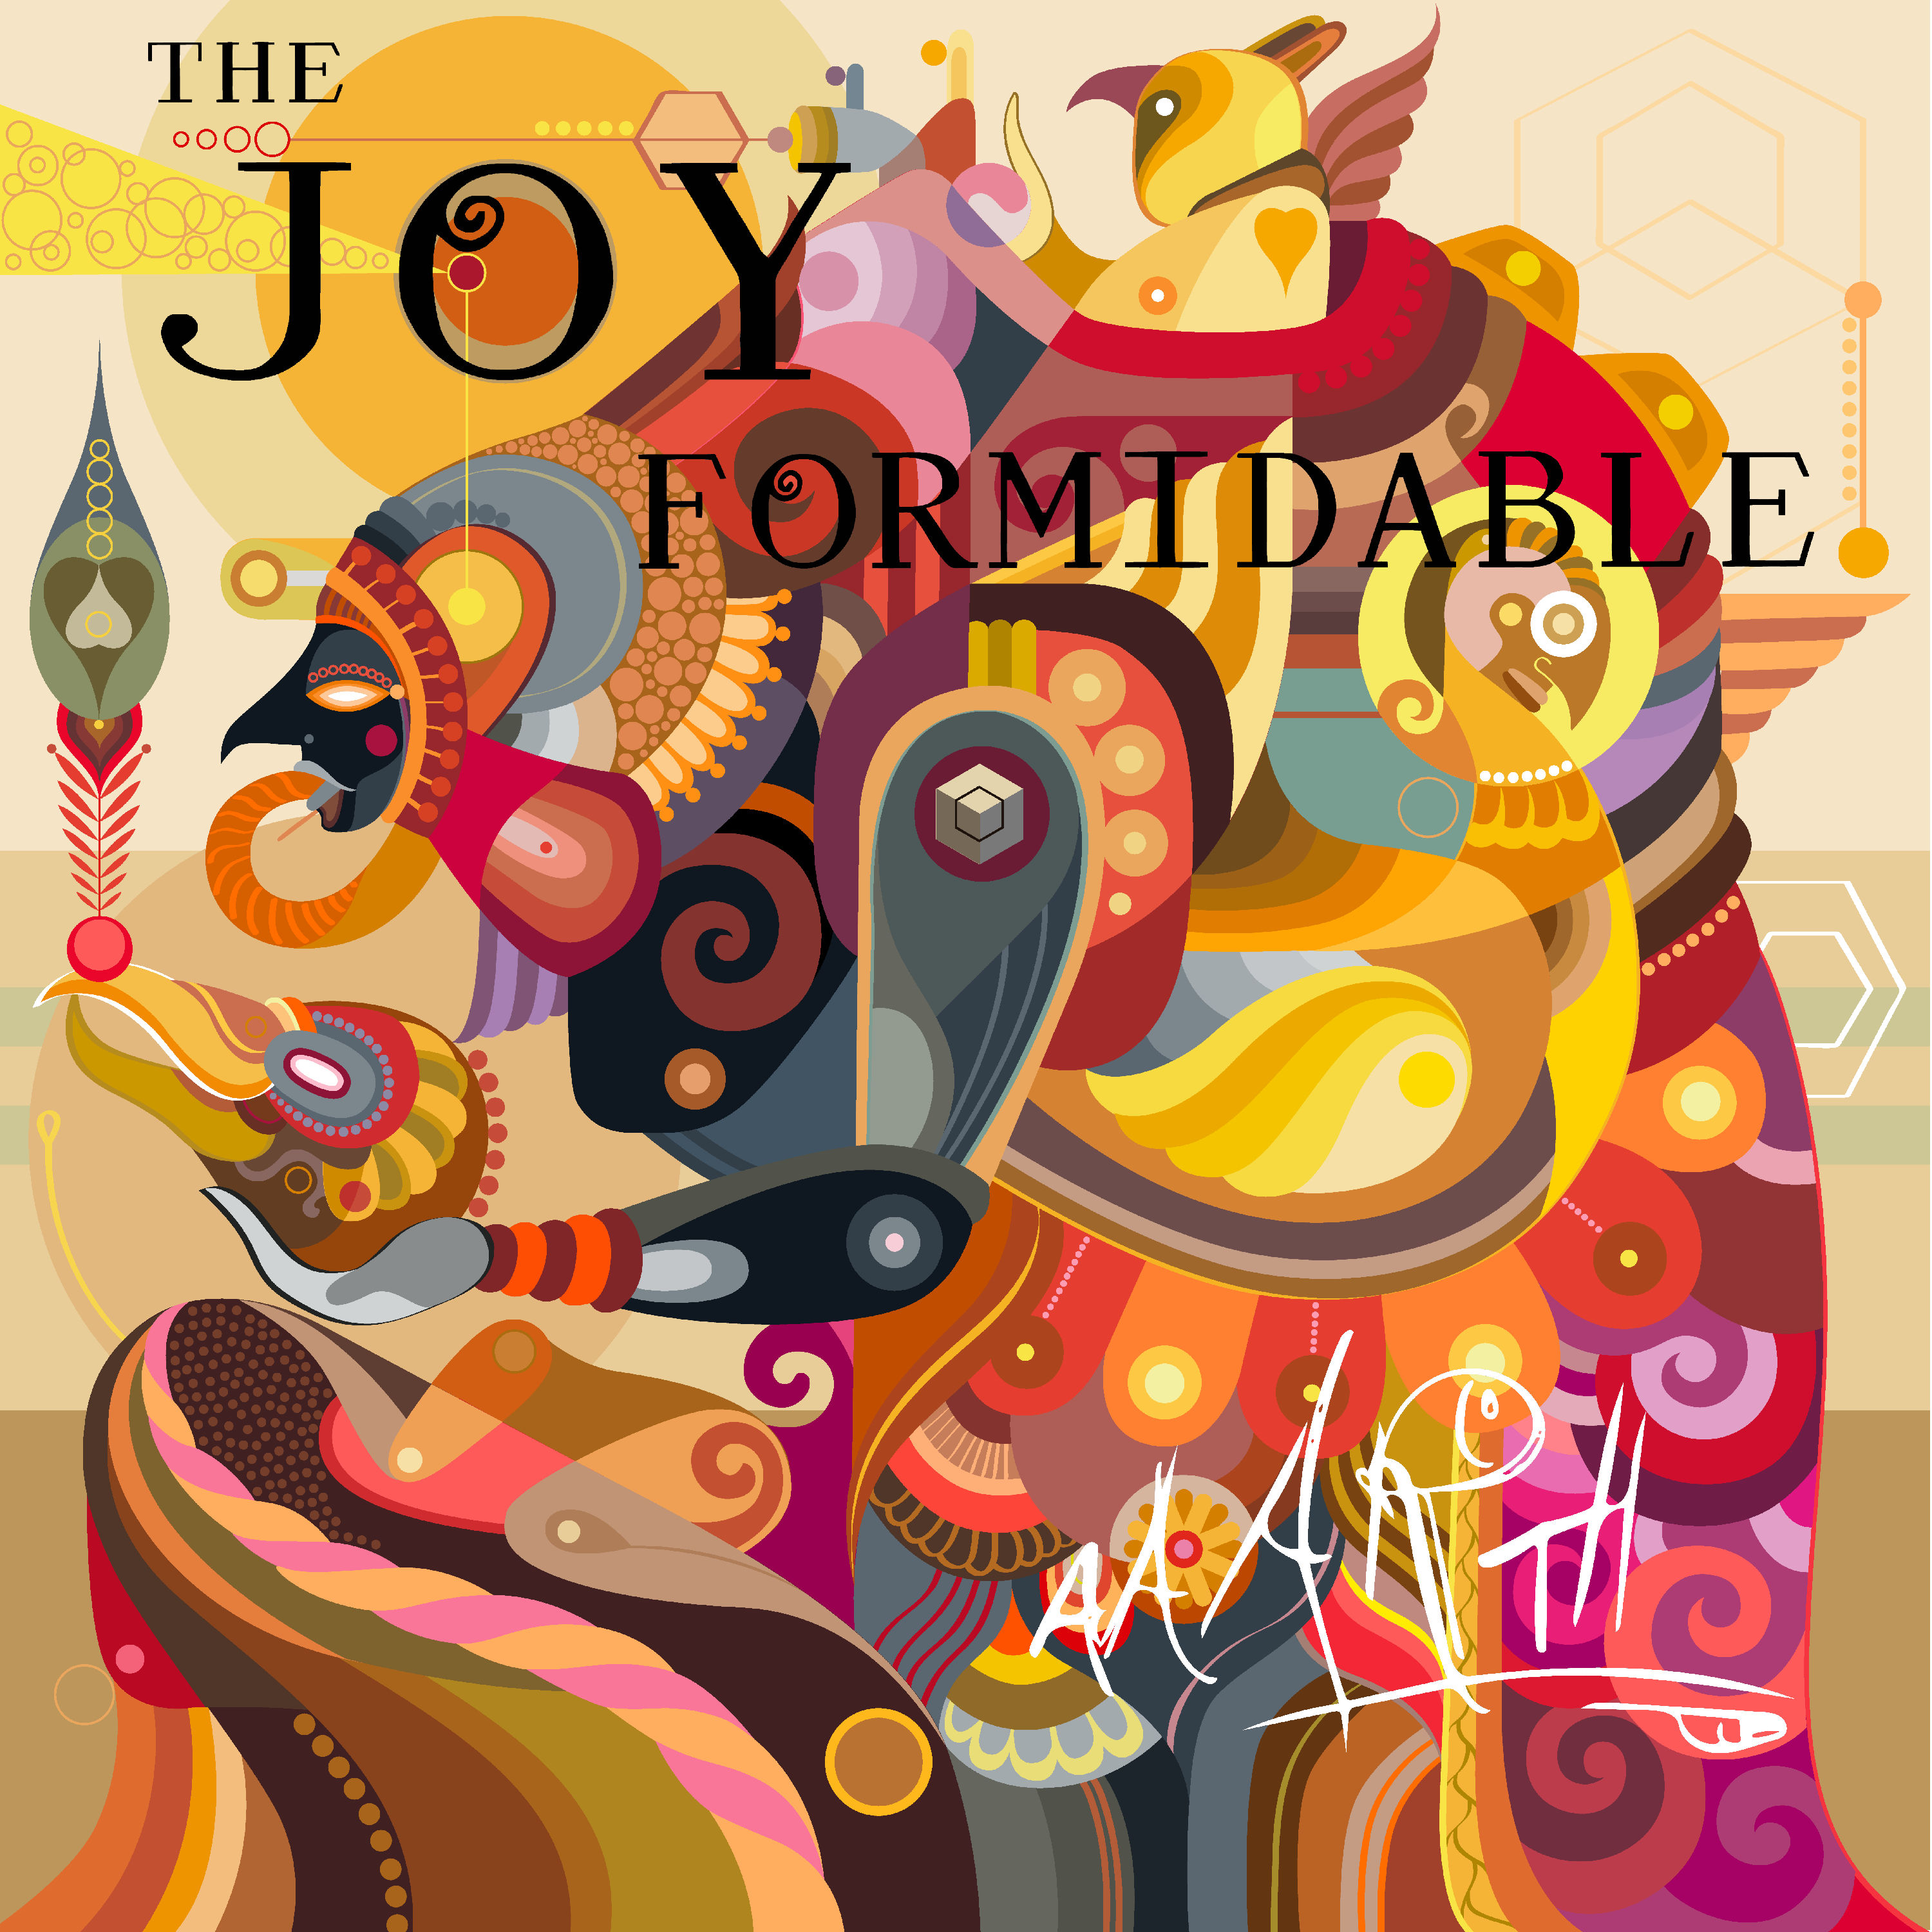 The Joy Formidable are returning this fall with 4th album 'AAARTH'